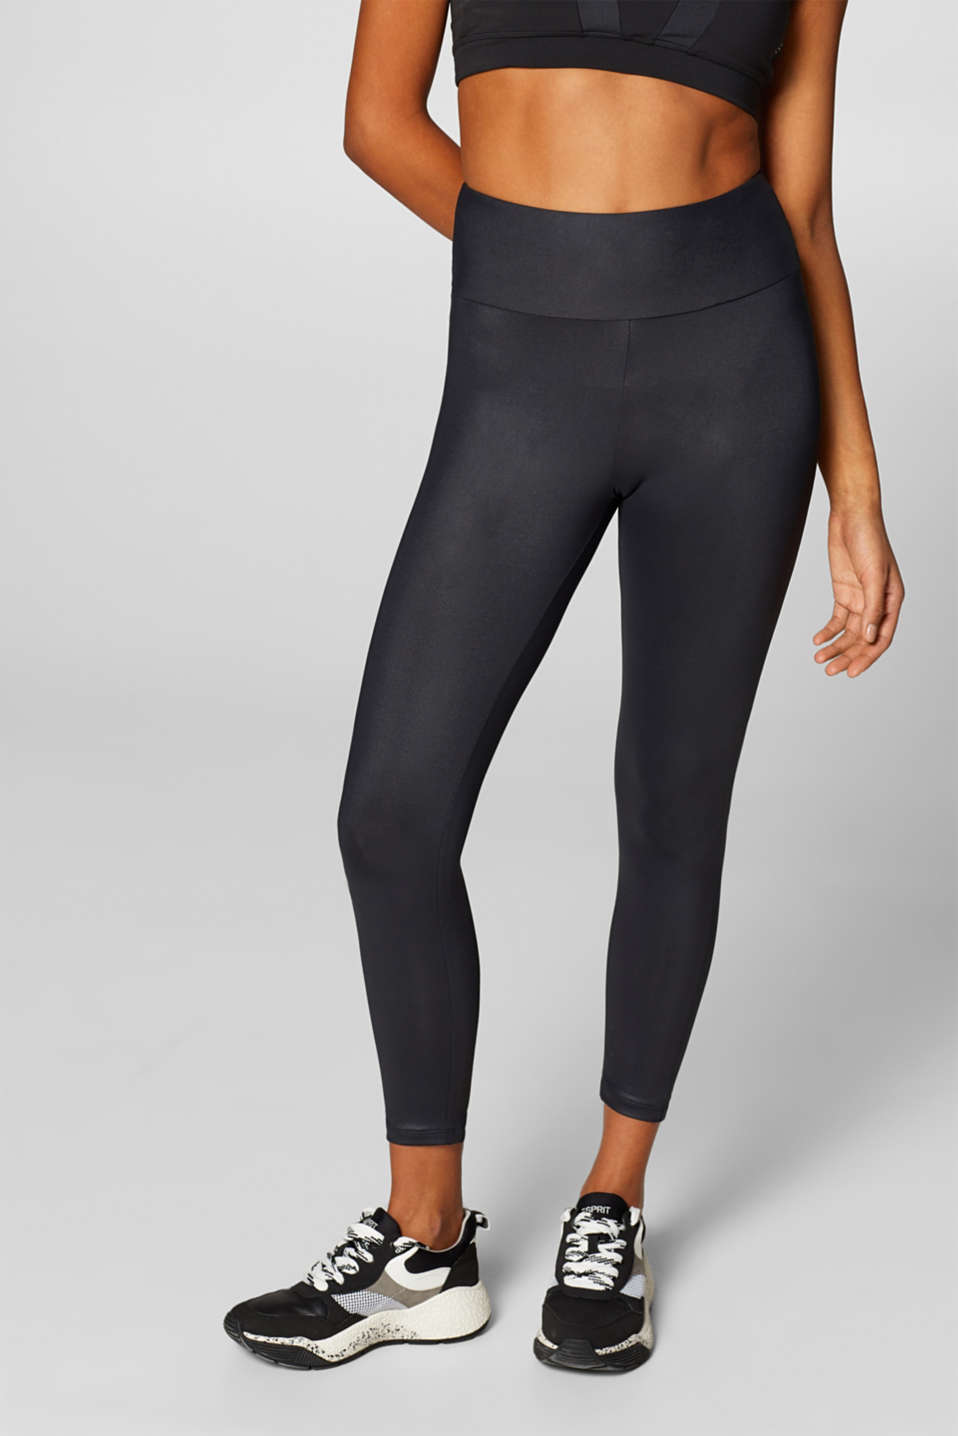 Esprit - Logo leggings with a subtle sheen, E-DRY